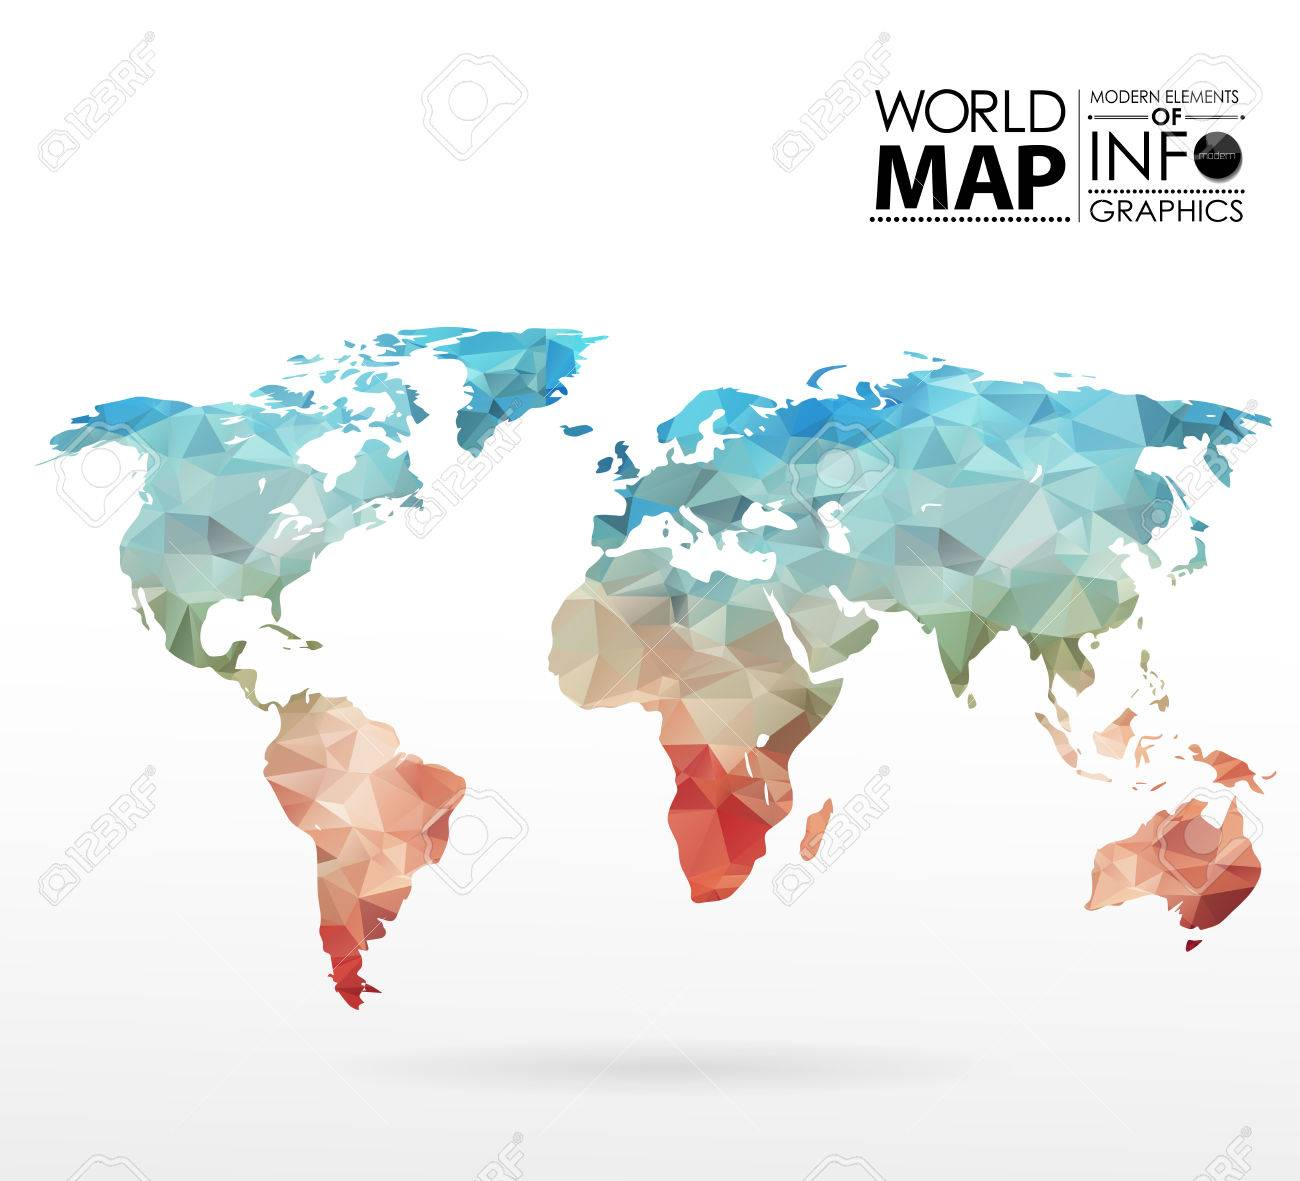 World map background in polygonal style modern elements of info vector world map background in polygonal style modern elements of info graphics world map gumiabroncs